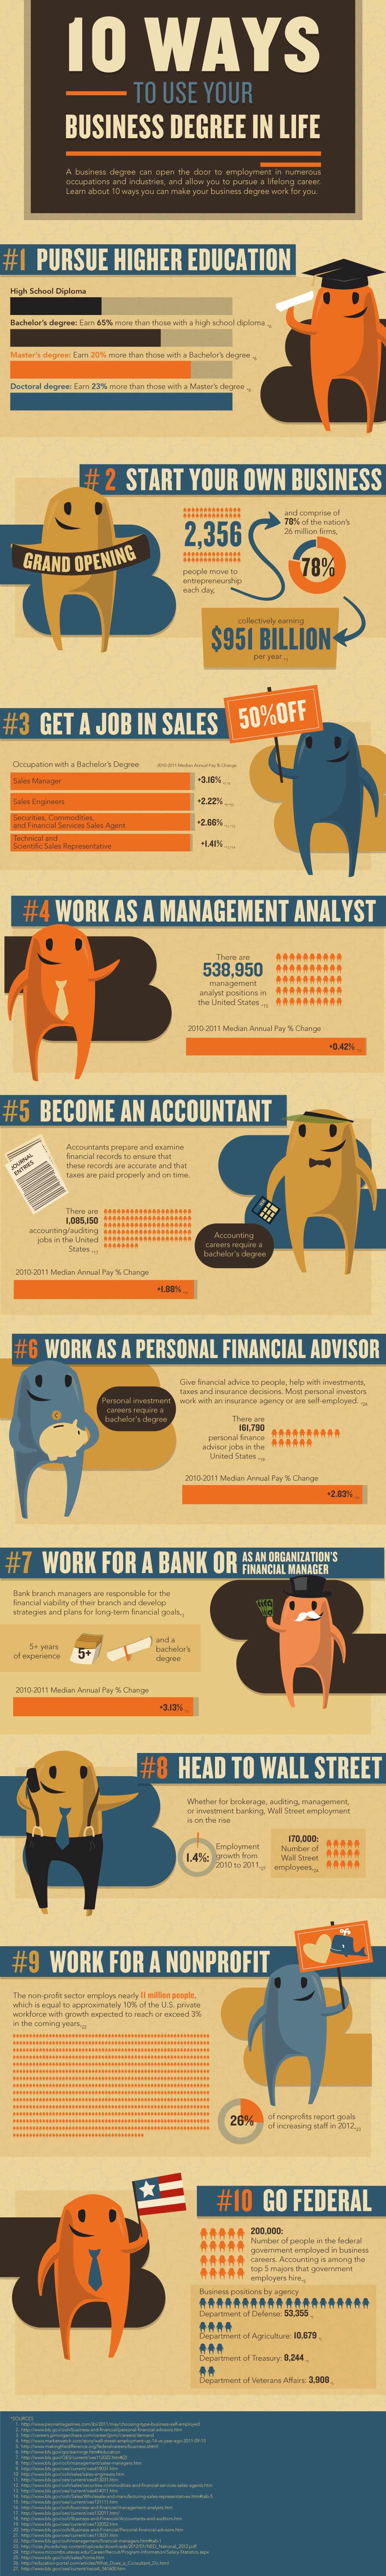 10-ways-to-use-your-business-degree-in-life_50567e4bd45d5